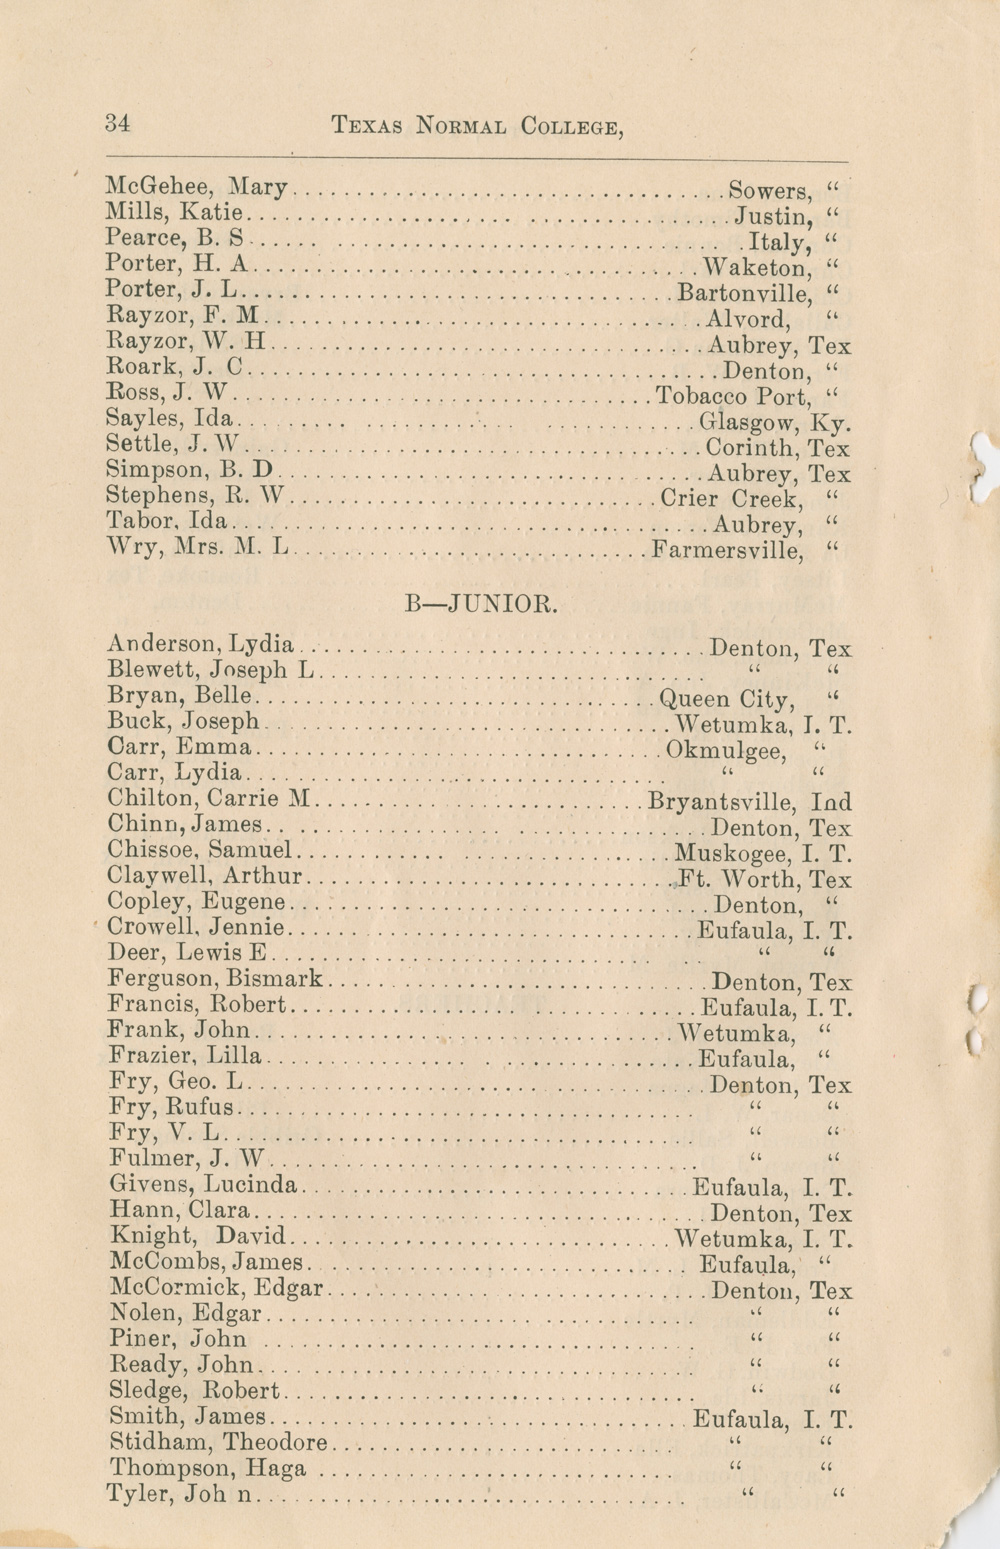 Student list page from 1890-91 Texas Normal College catalog